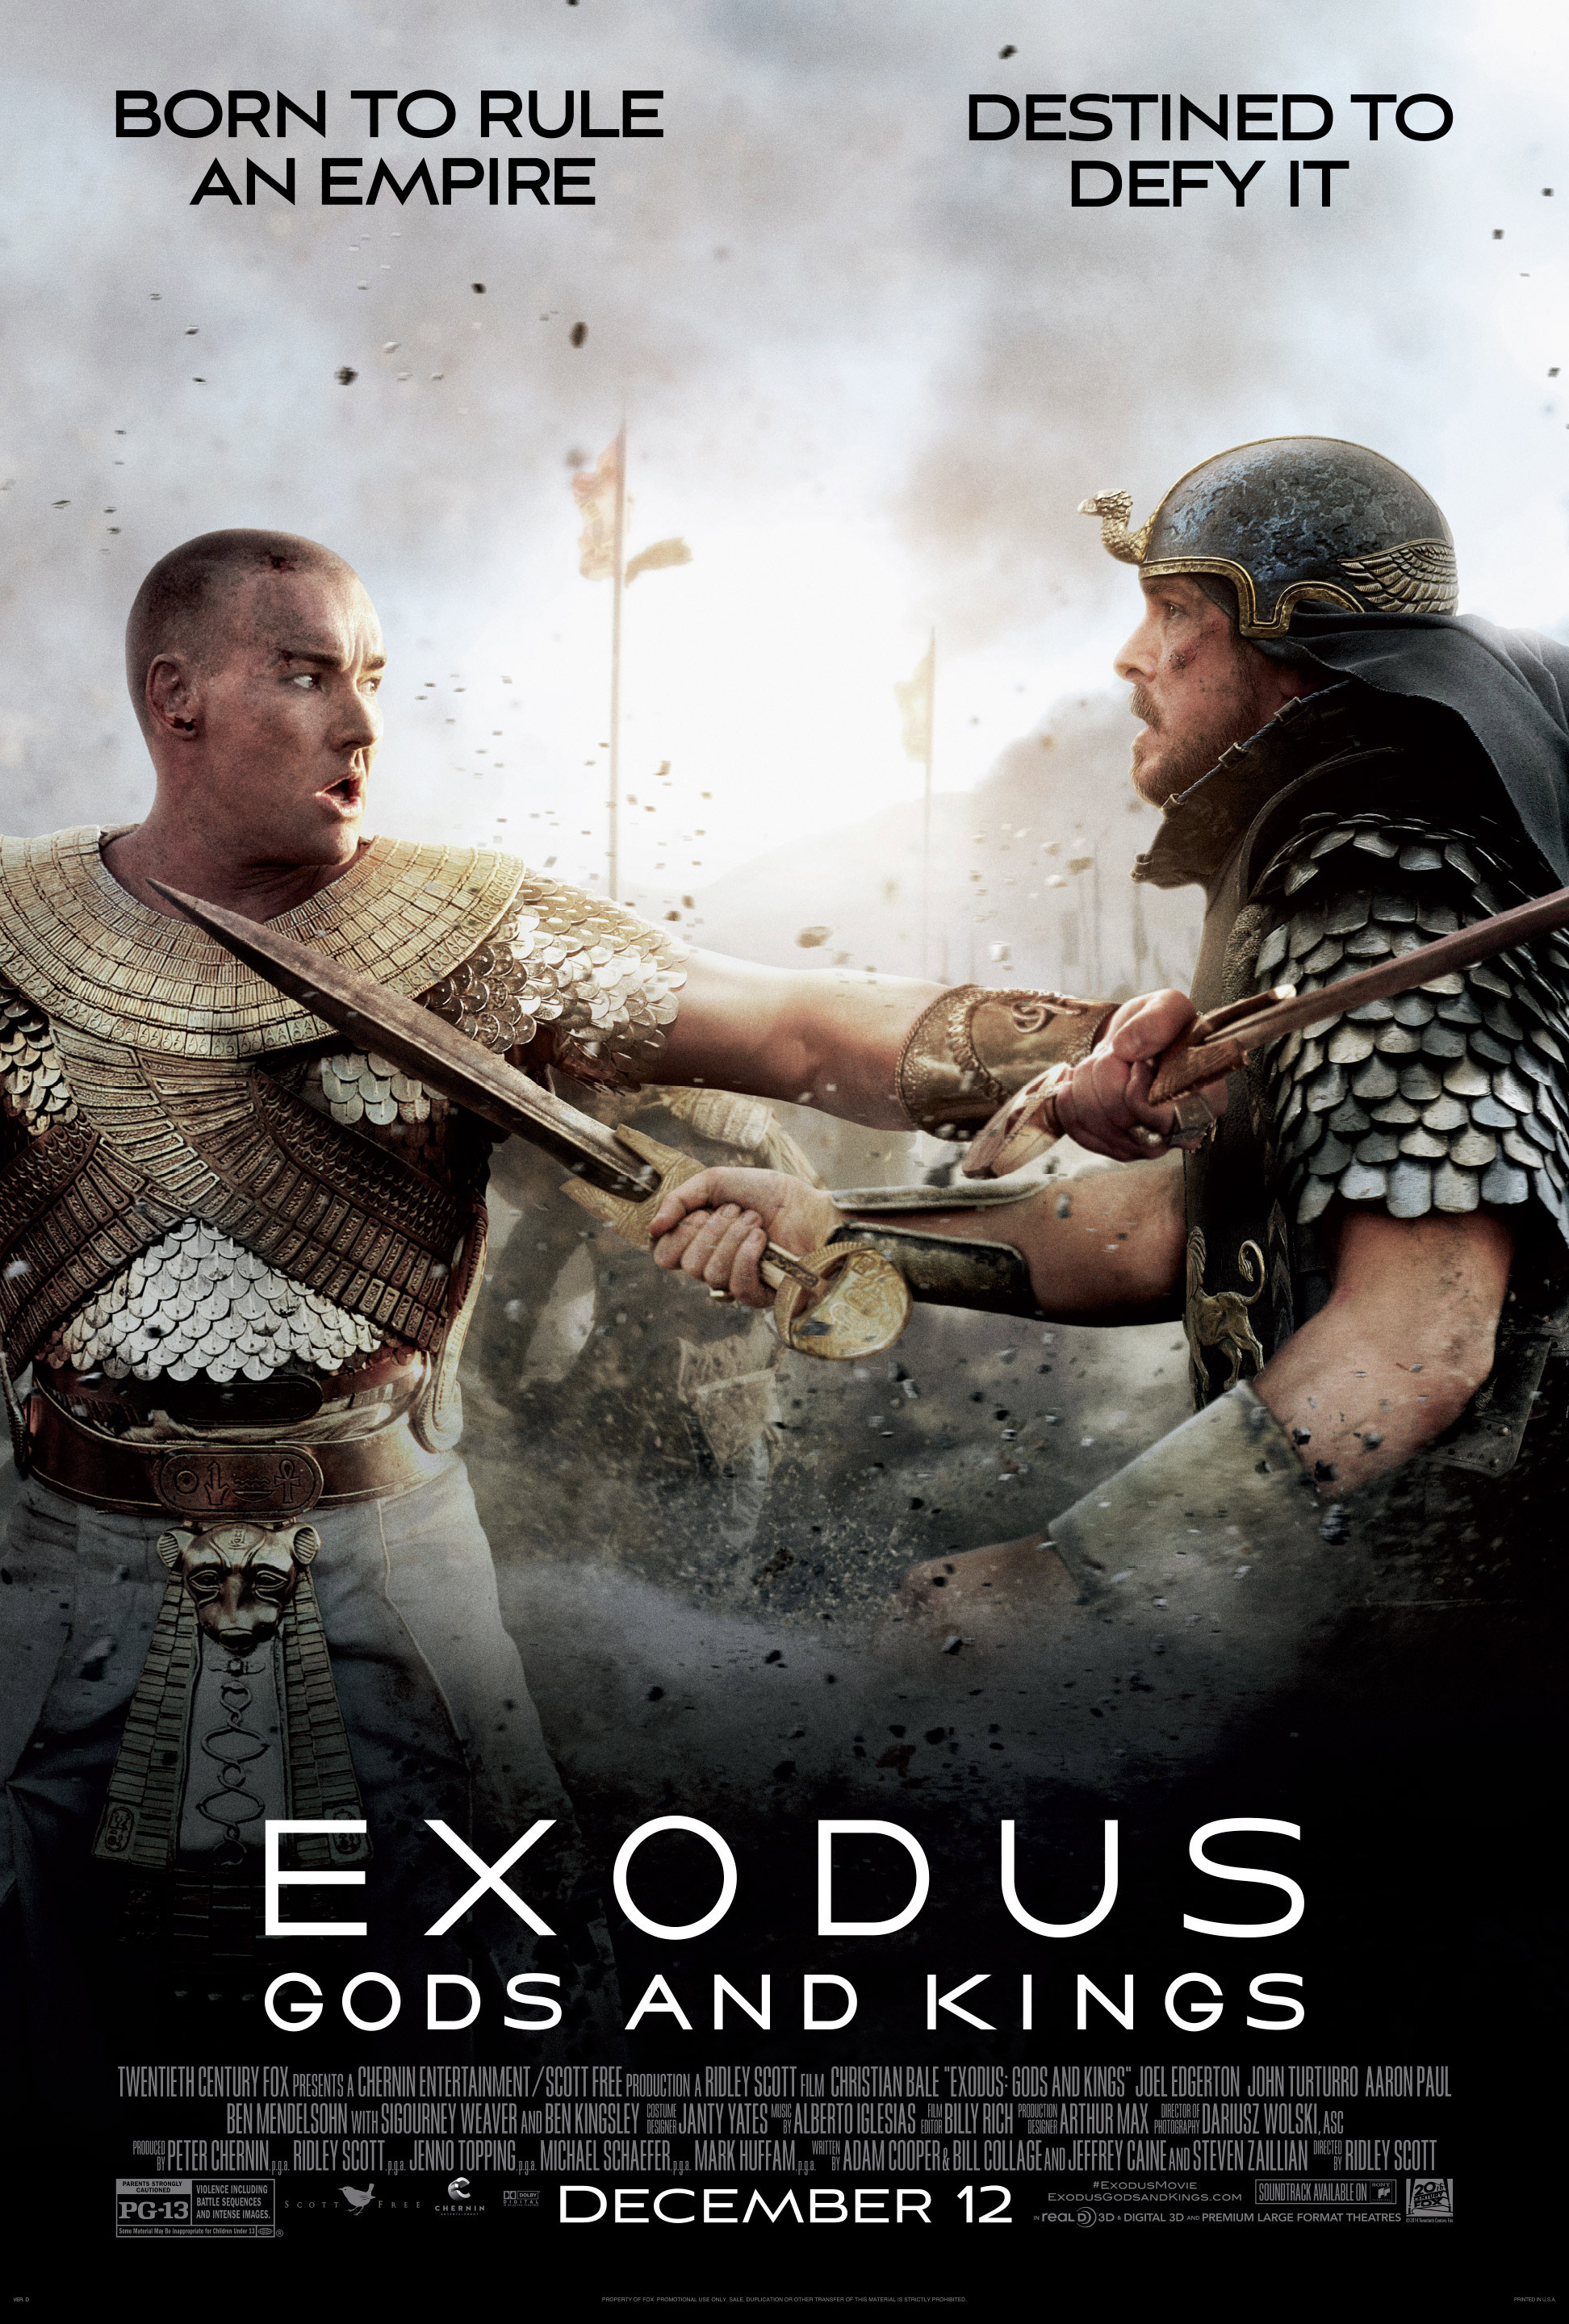 http://www.beliefnet.com/columnists/moviemom/files/2014/12/exodus-poster.jpg